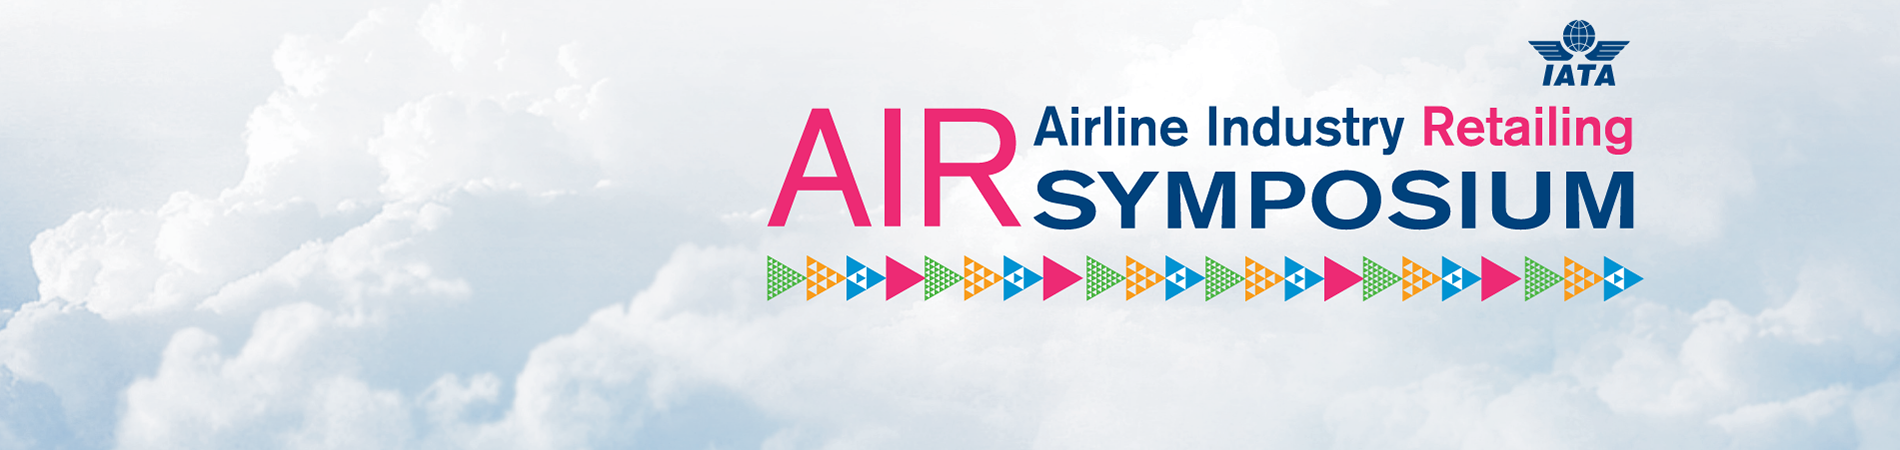 IATA Airline Industry Retailing (AIR) Symposium